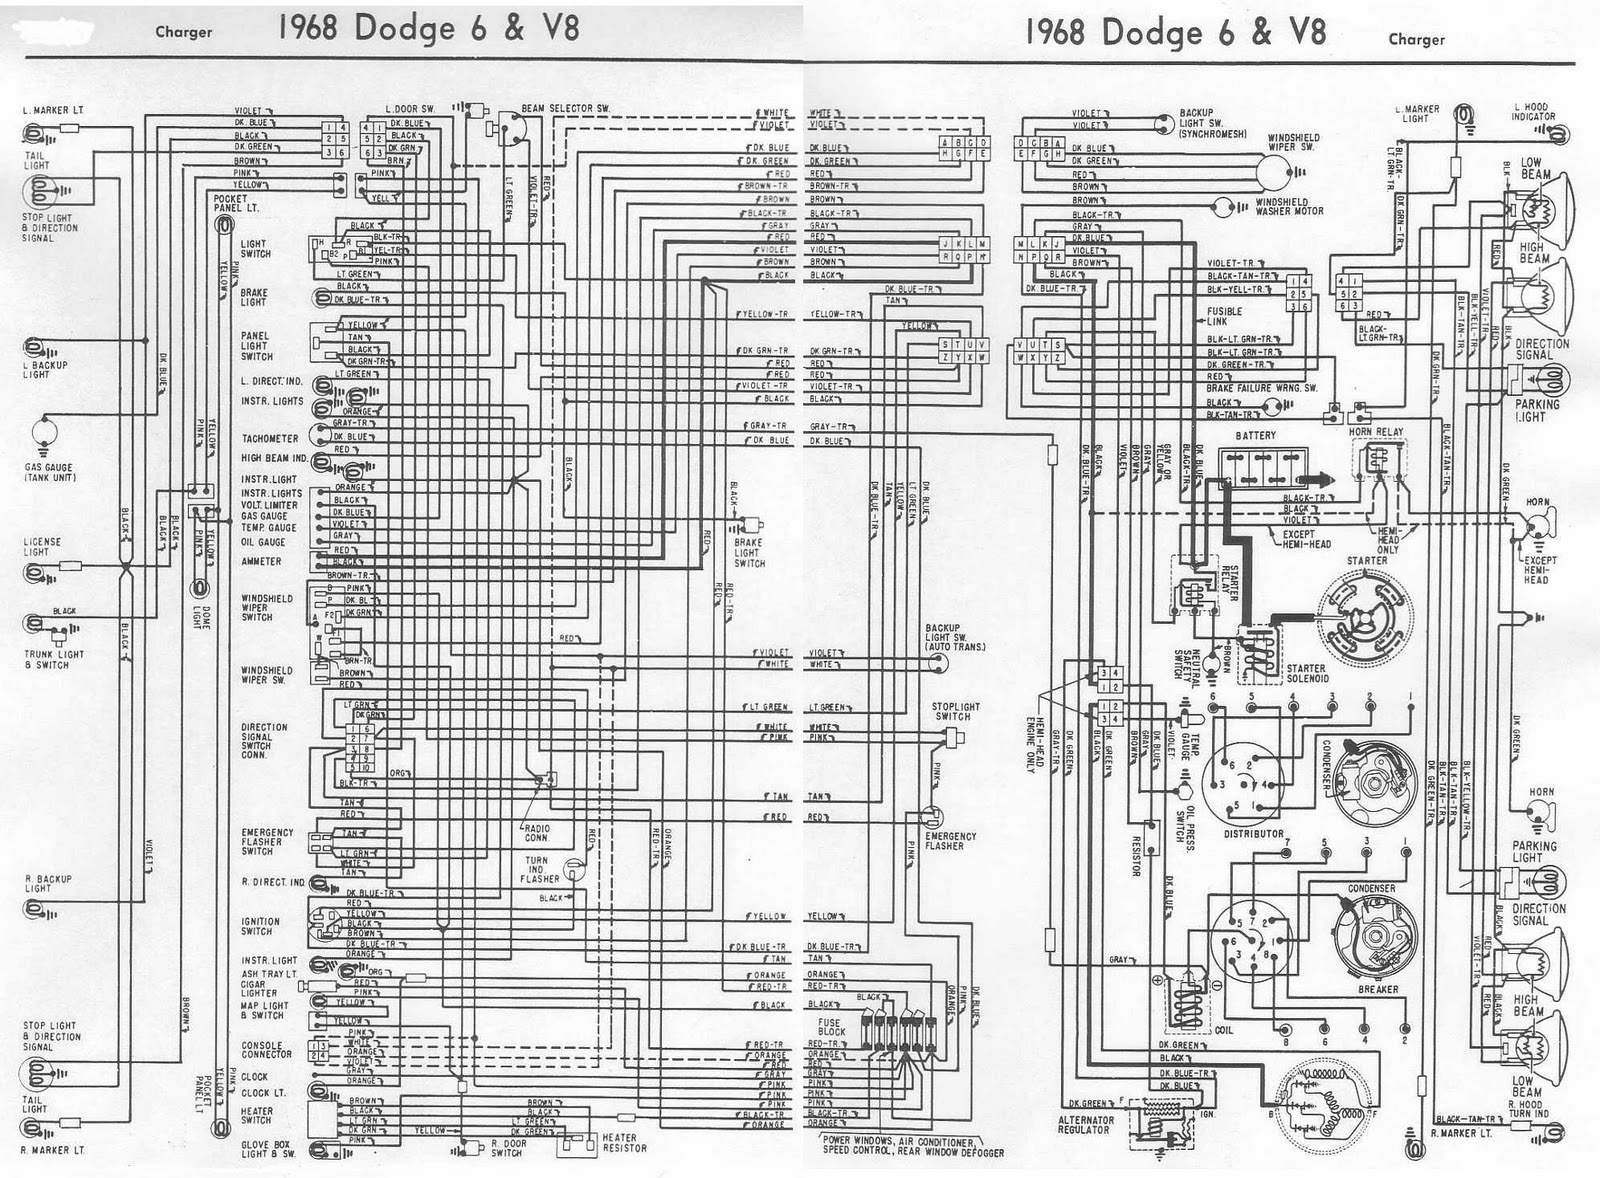 Dodge+Charger+1968+6+and+V8+Complete+Electrical+Wiring+Diagram dodge charger 1968 6 and v8 complete electrical wiring diagram dodge wiring diagrams at readyjetset.co